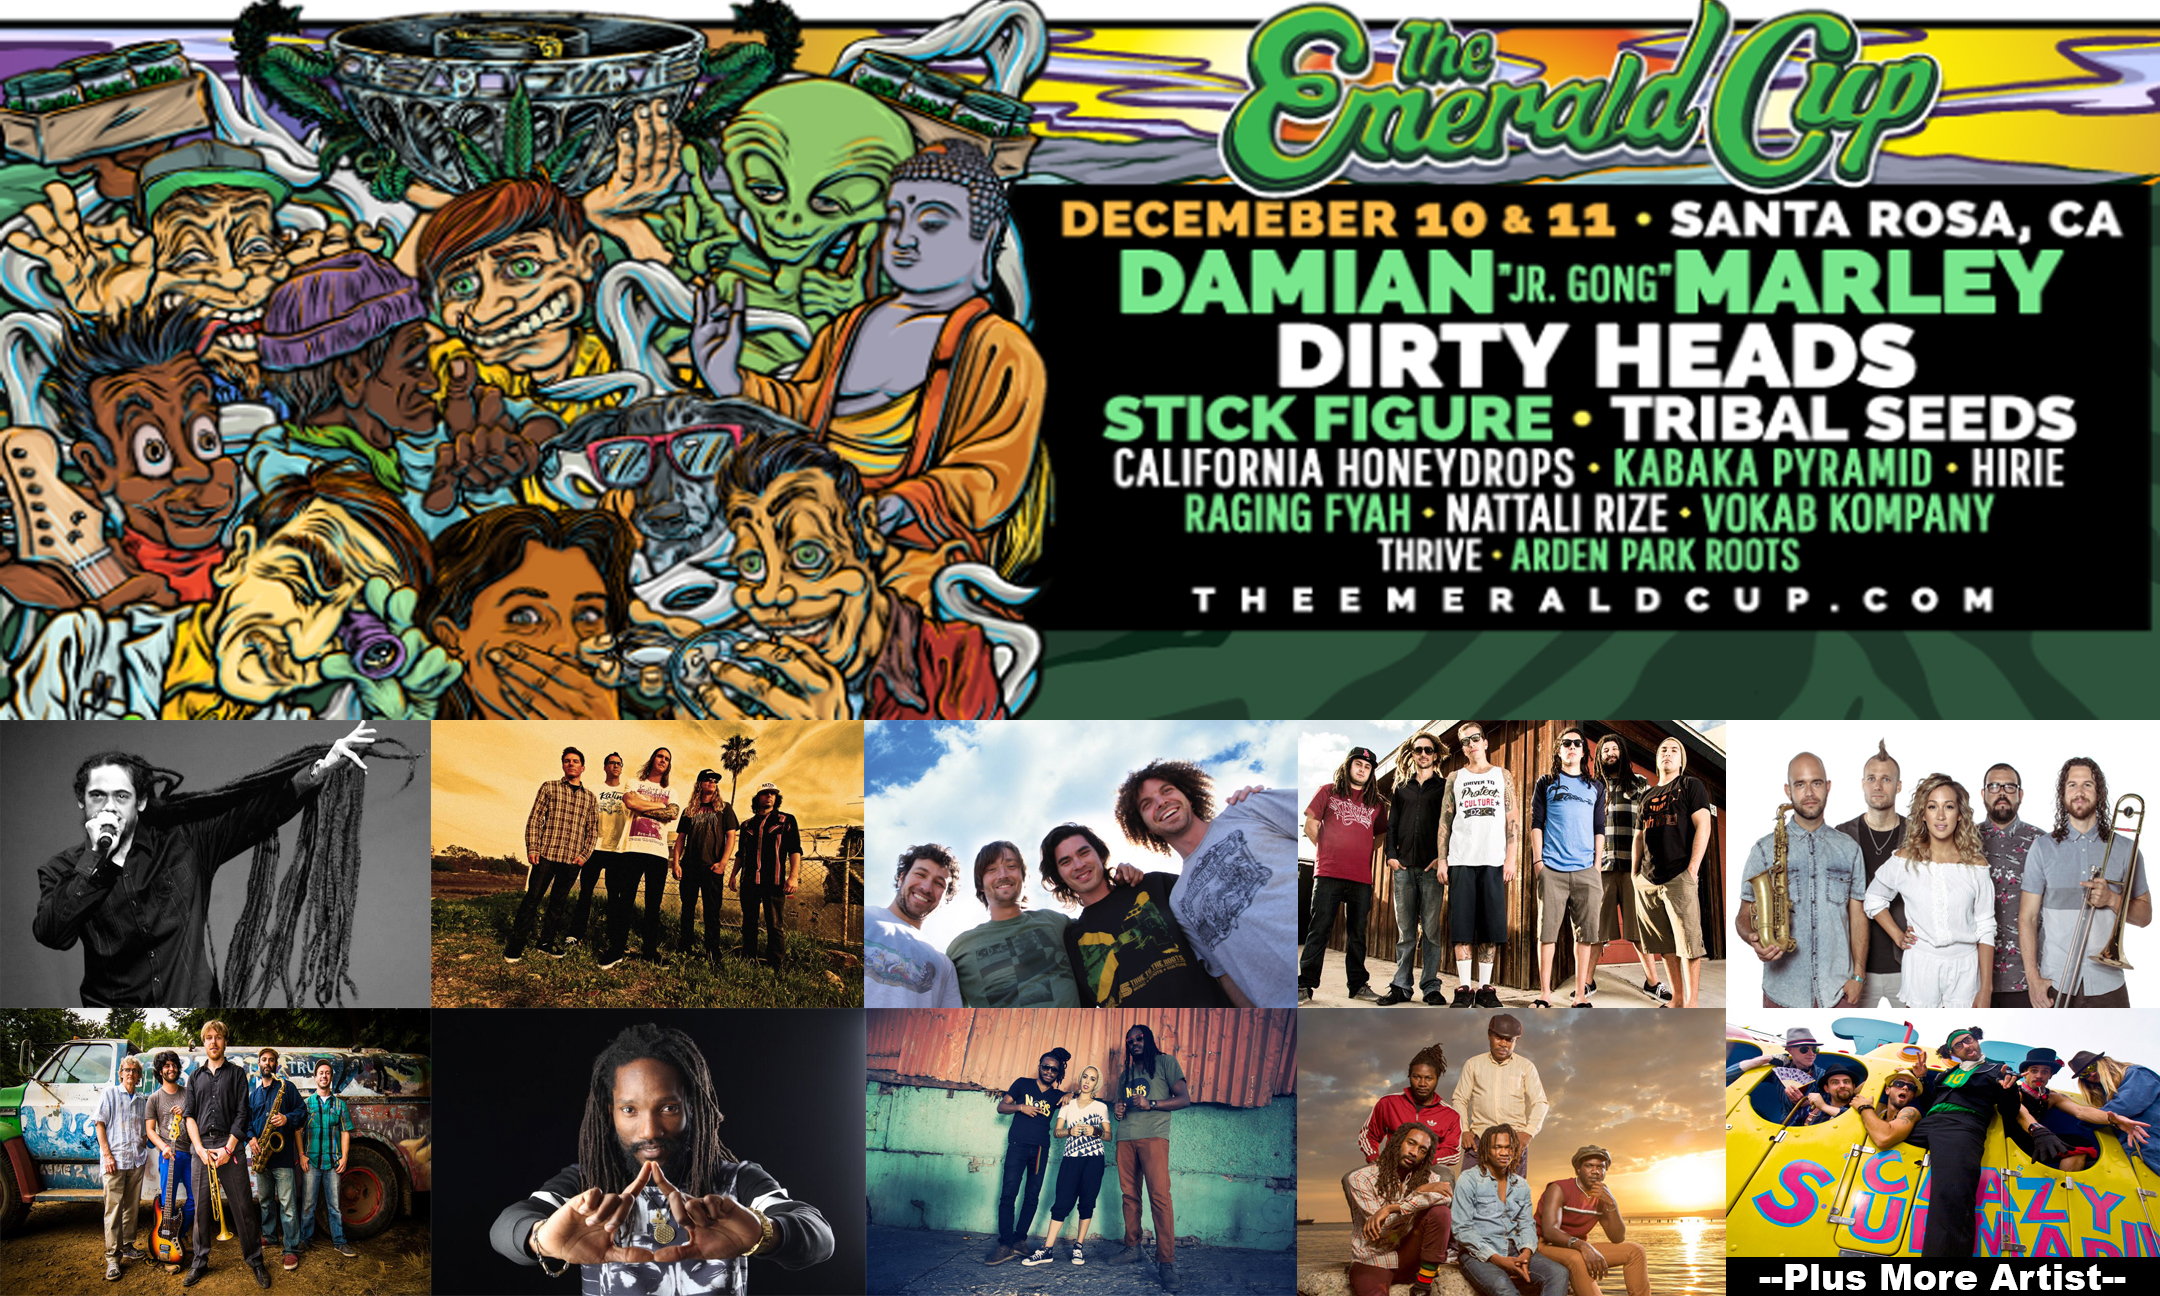 The Emerald Cup Artist Announcement (Damian Marley, Dirty Heads, Tribal Seeds, Stick Figure and More)